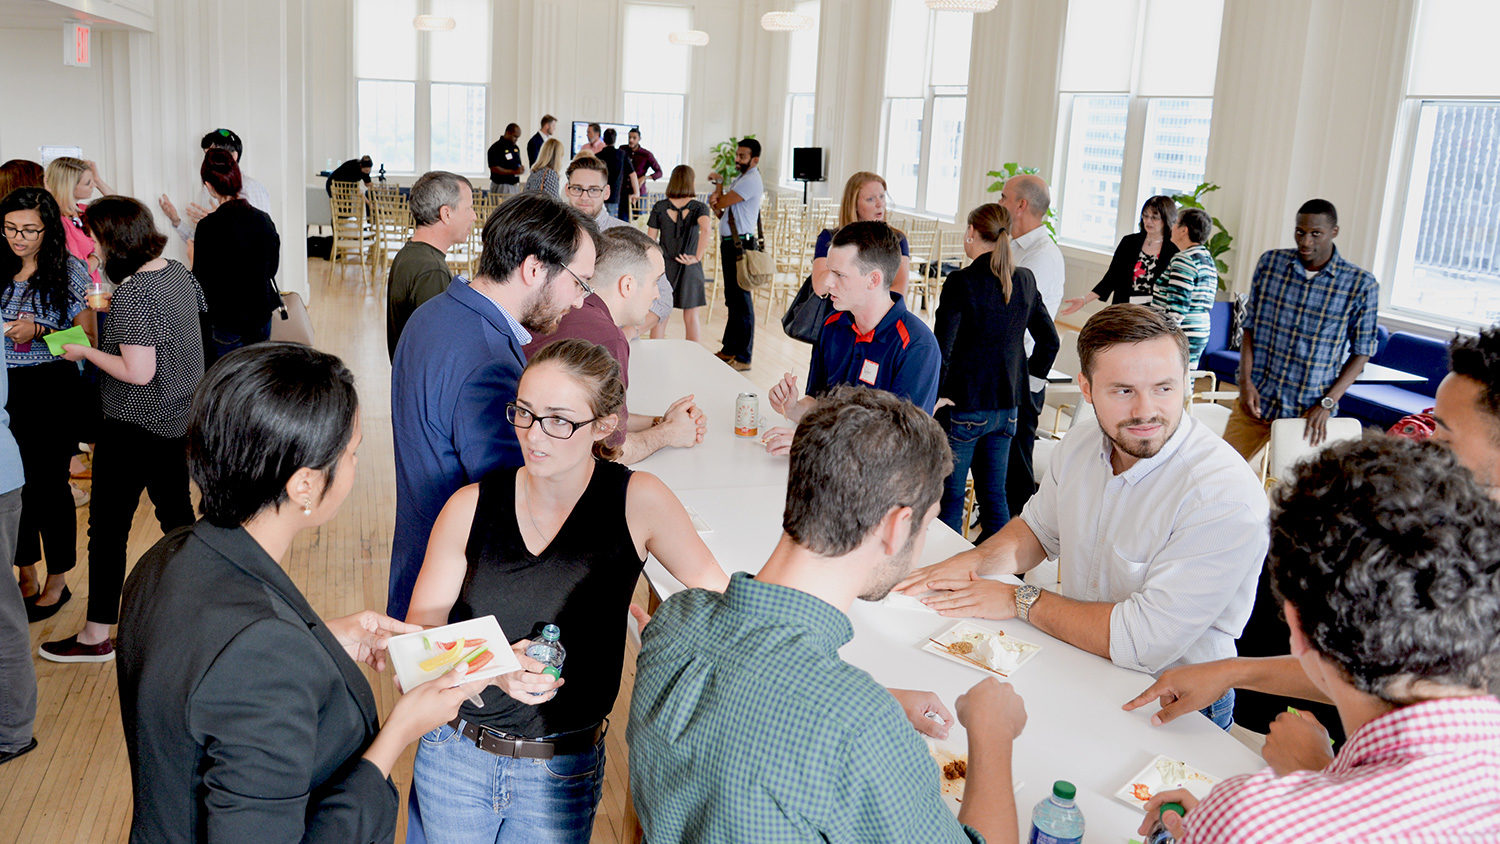 2018 Andrews Accelerator participants had time to network with local entrepreneurs and faculty before and after their team presentations at the HQ Capital Club in downtown Raleigh.